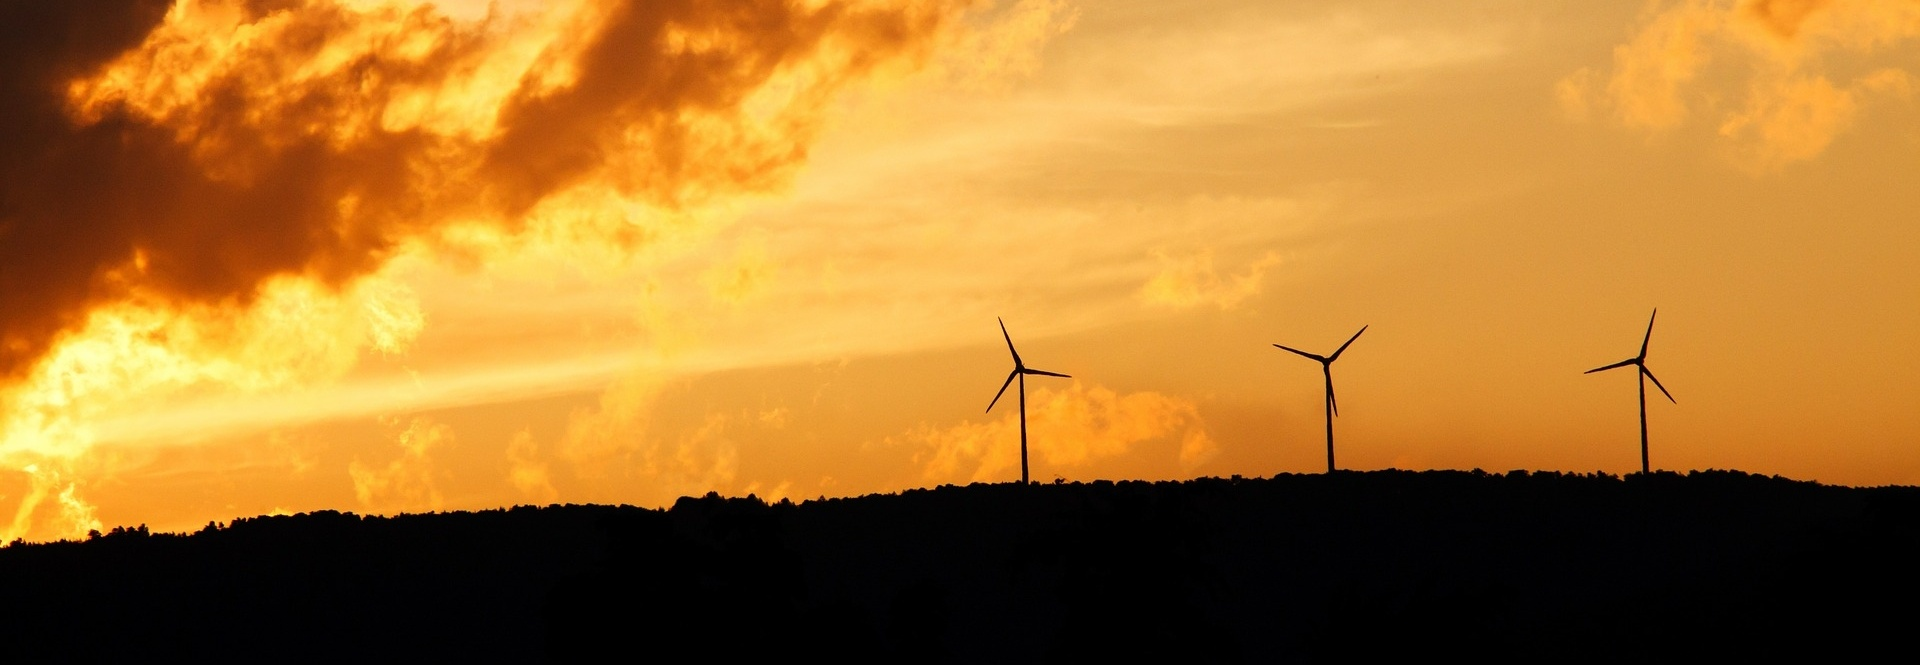 wind-turbines-sunset-new-normal-america.jpg